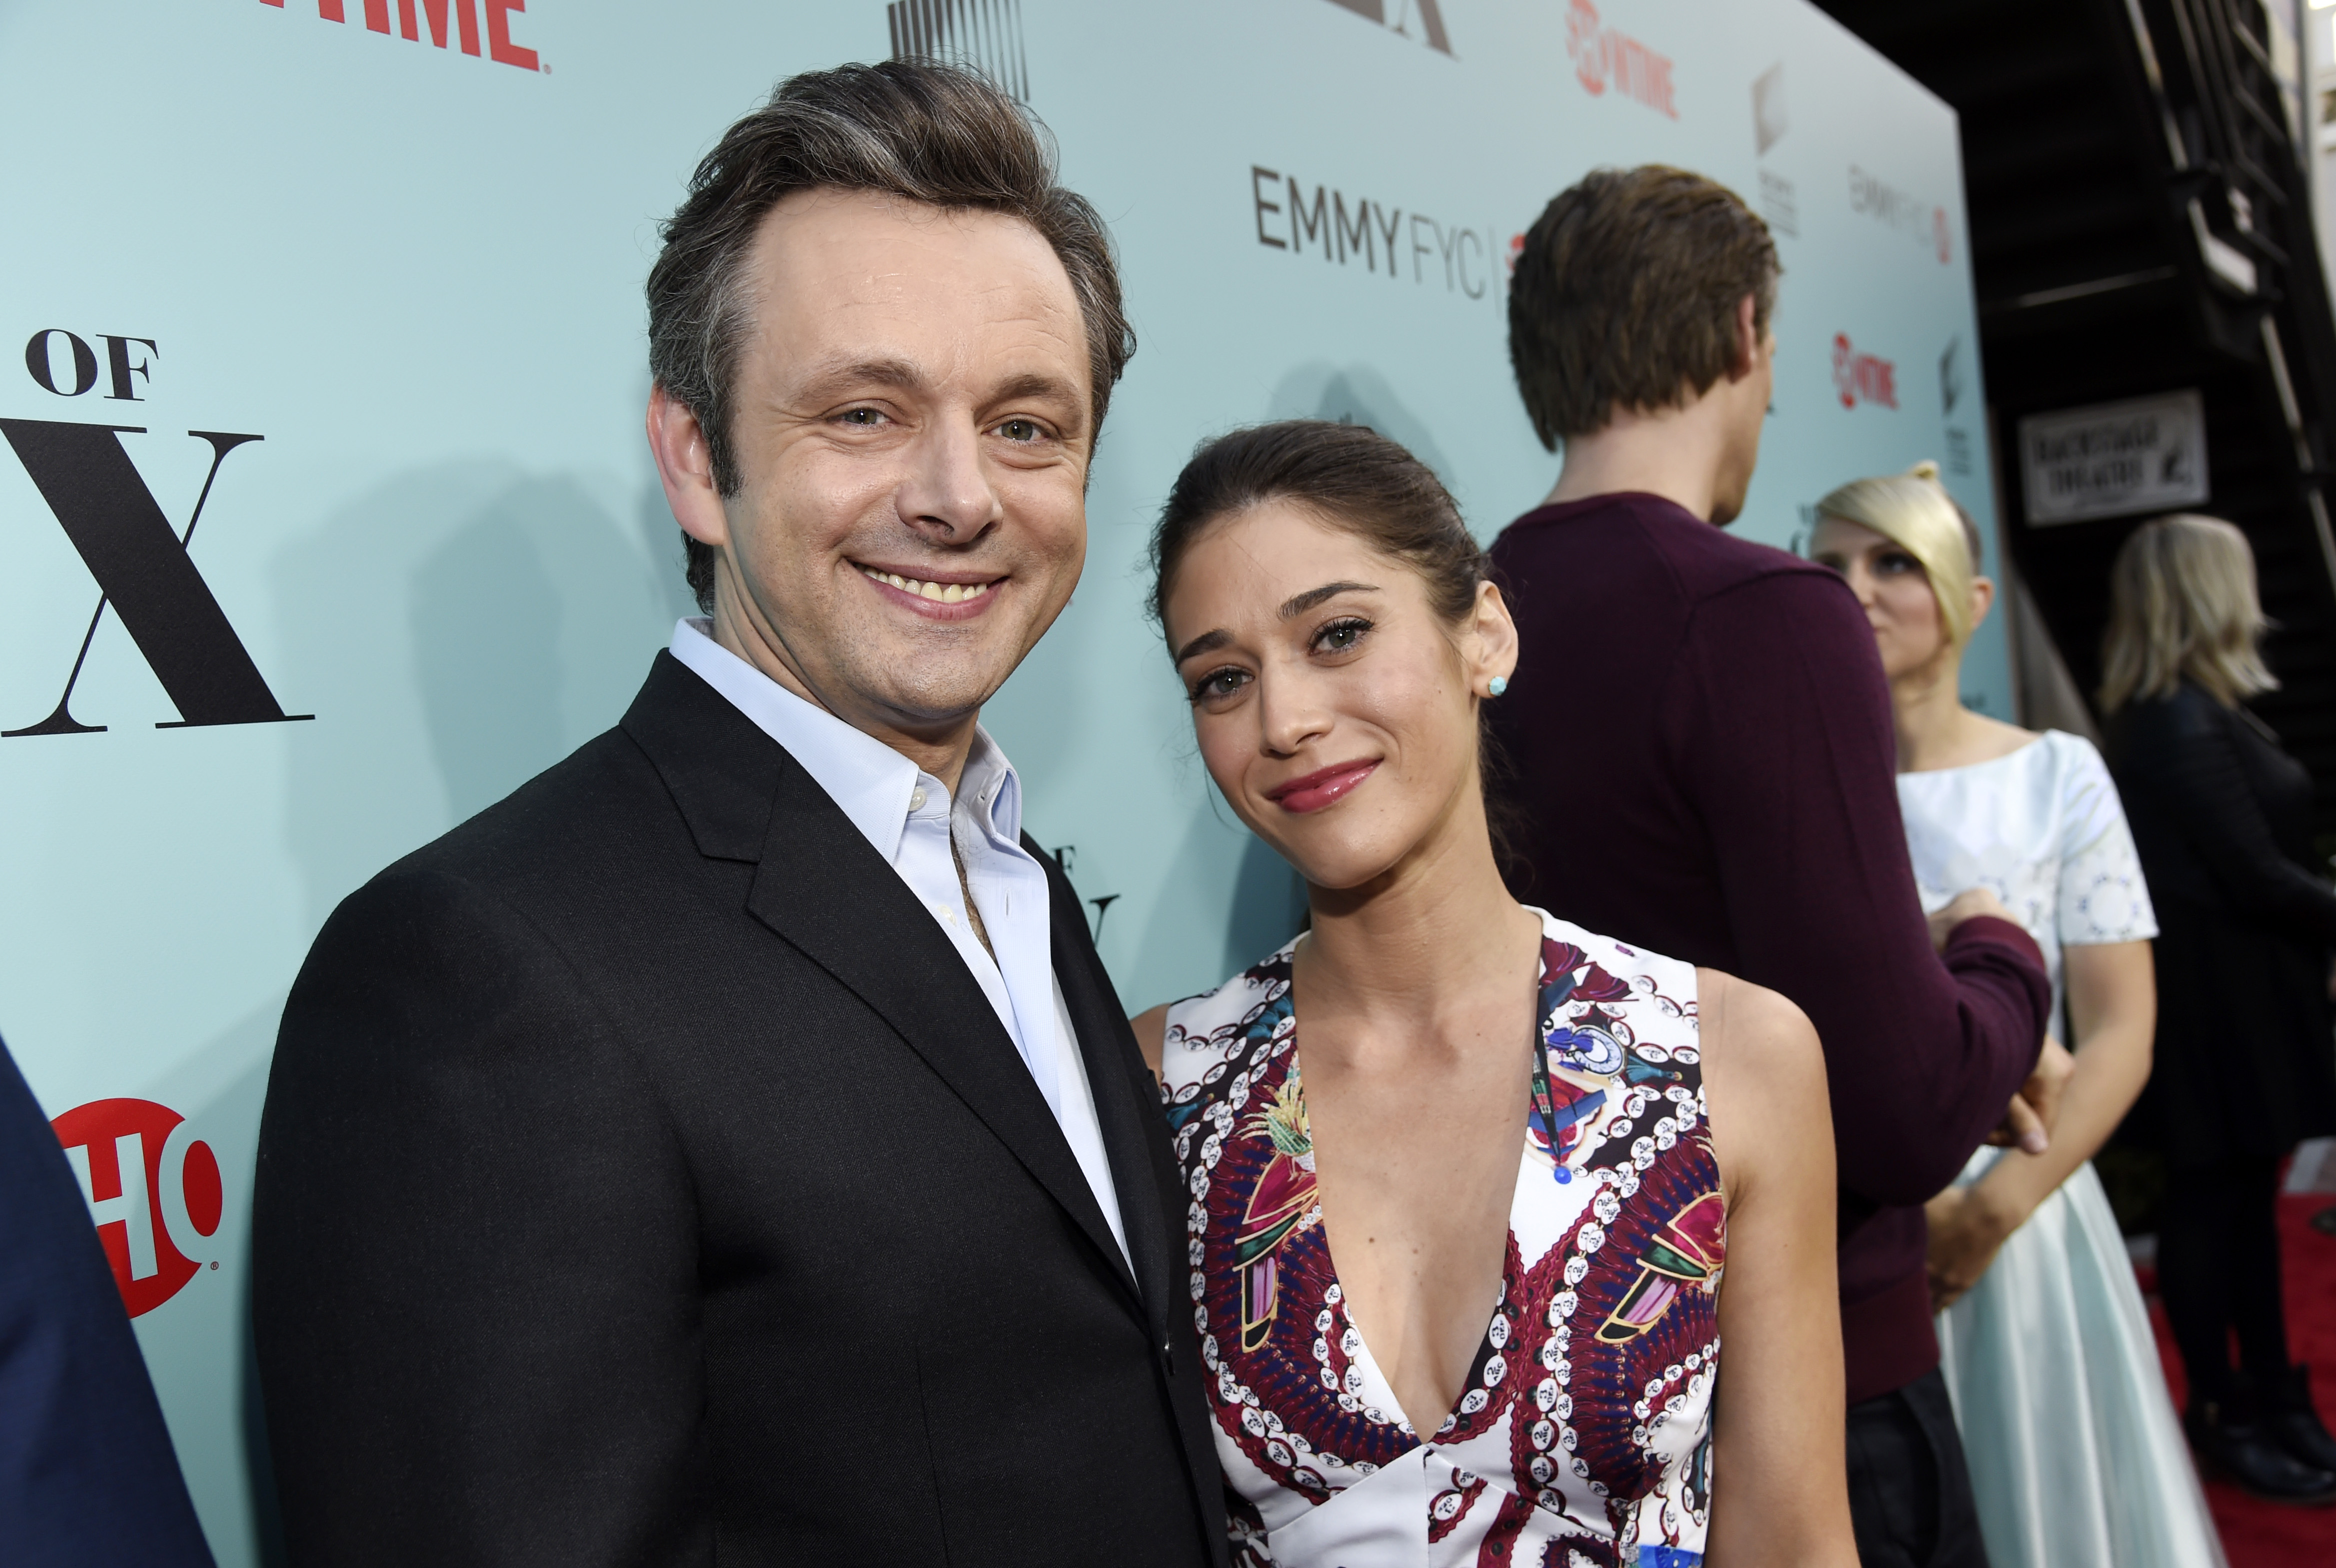 Michael Sheen, left, and Lizzy Caplan, cast members in the Showtime series  Masters of Sex,  pose together at a screening and panel discussion for the show at Sony Pictures Studios on Tuesday, May 5, 2015, in Culver City, Calif.